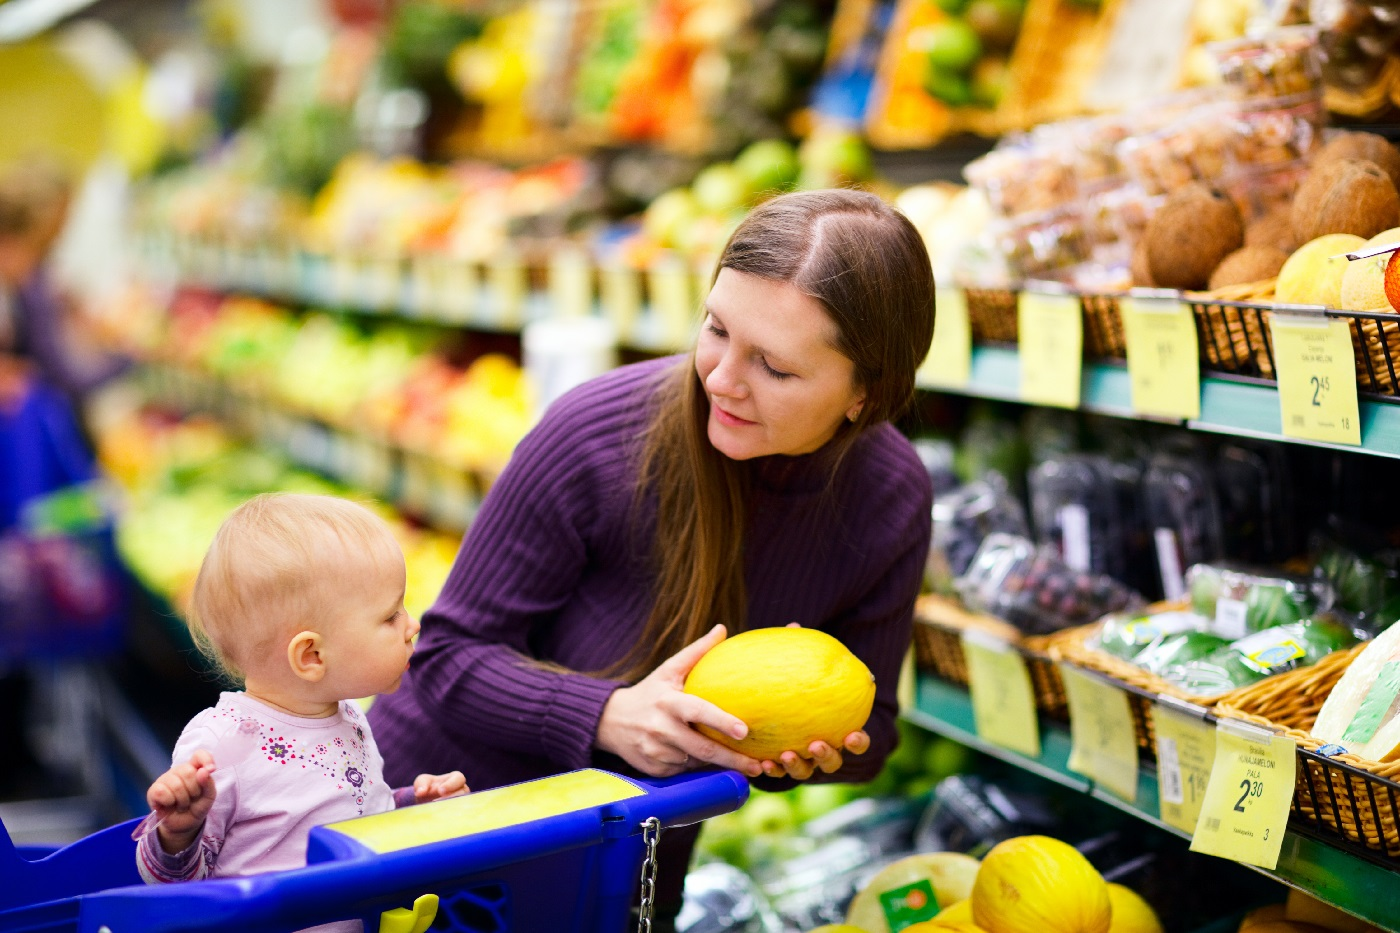 Mom and daughter shopping at grocery store together